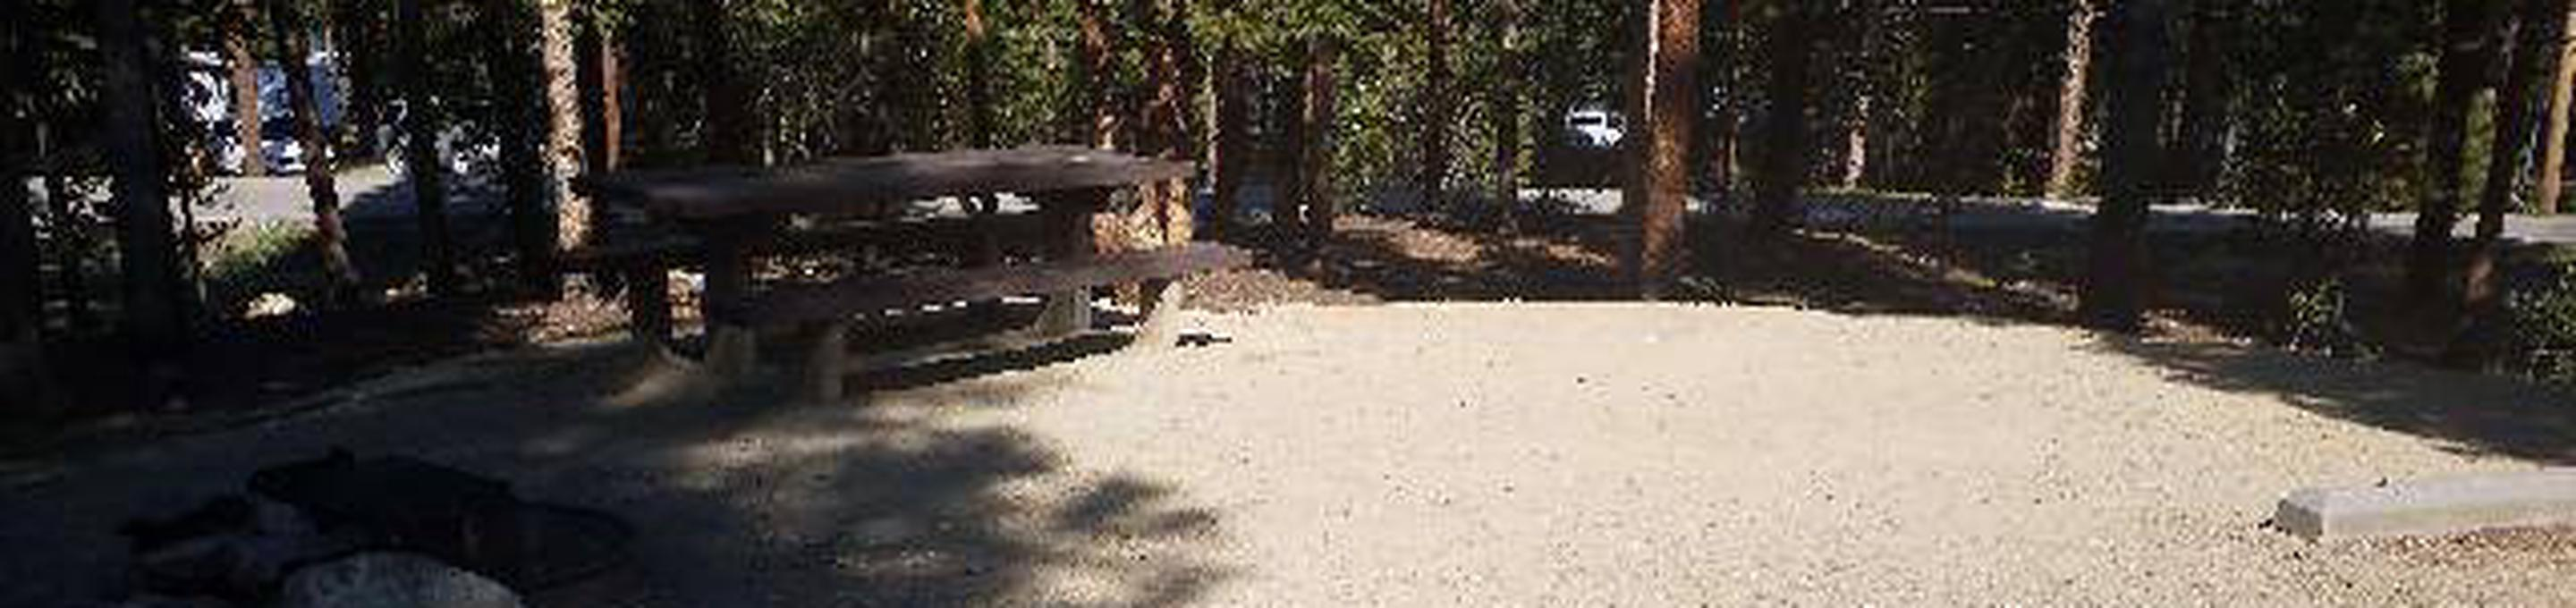 Molly Brown Campground, site 25